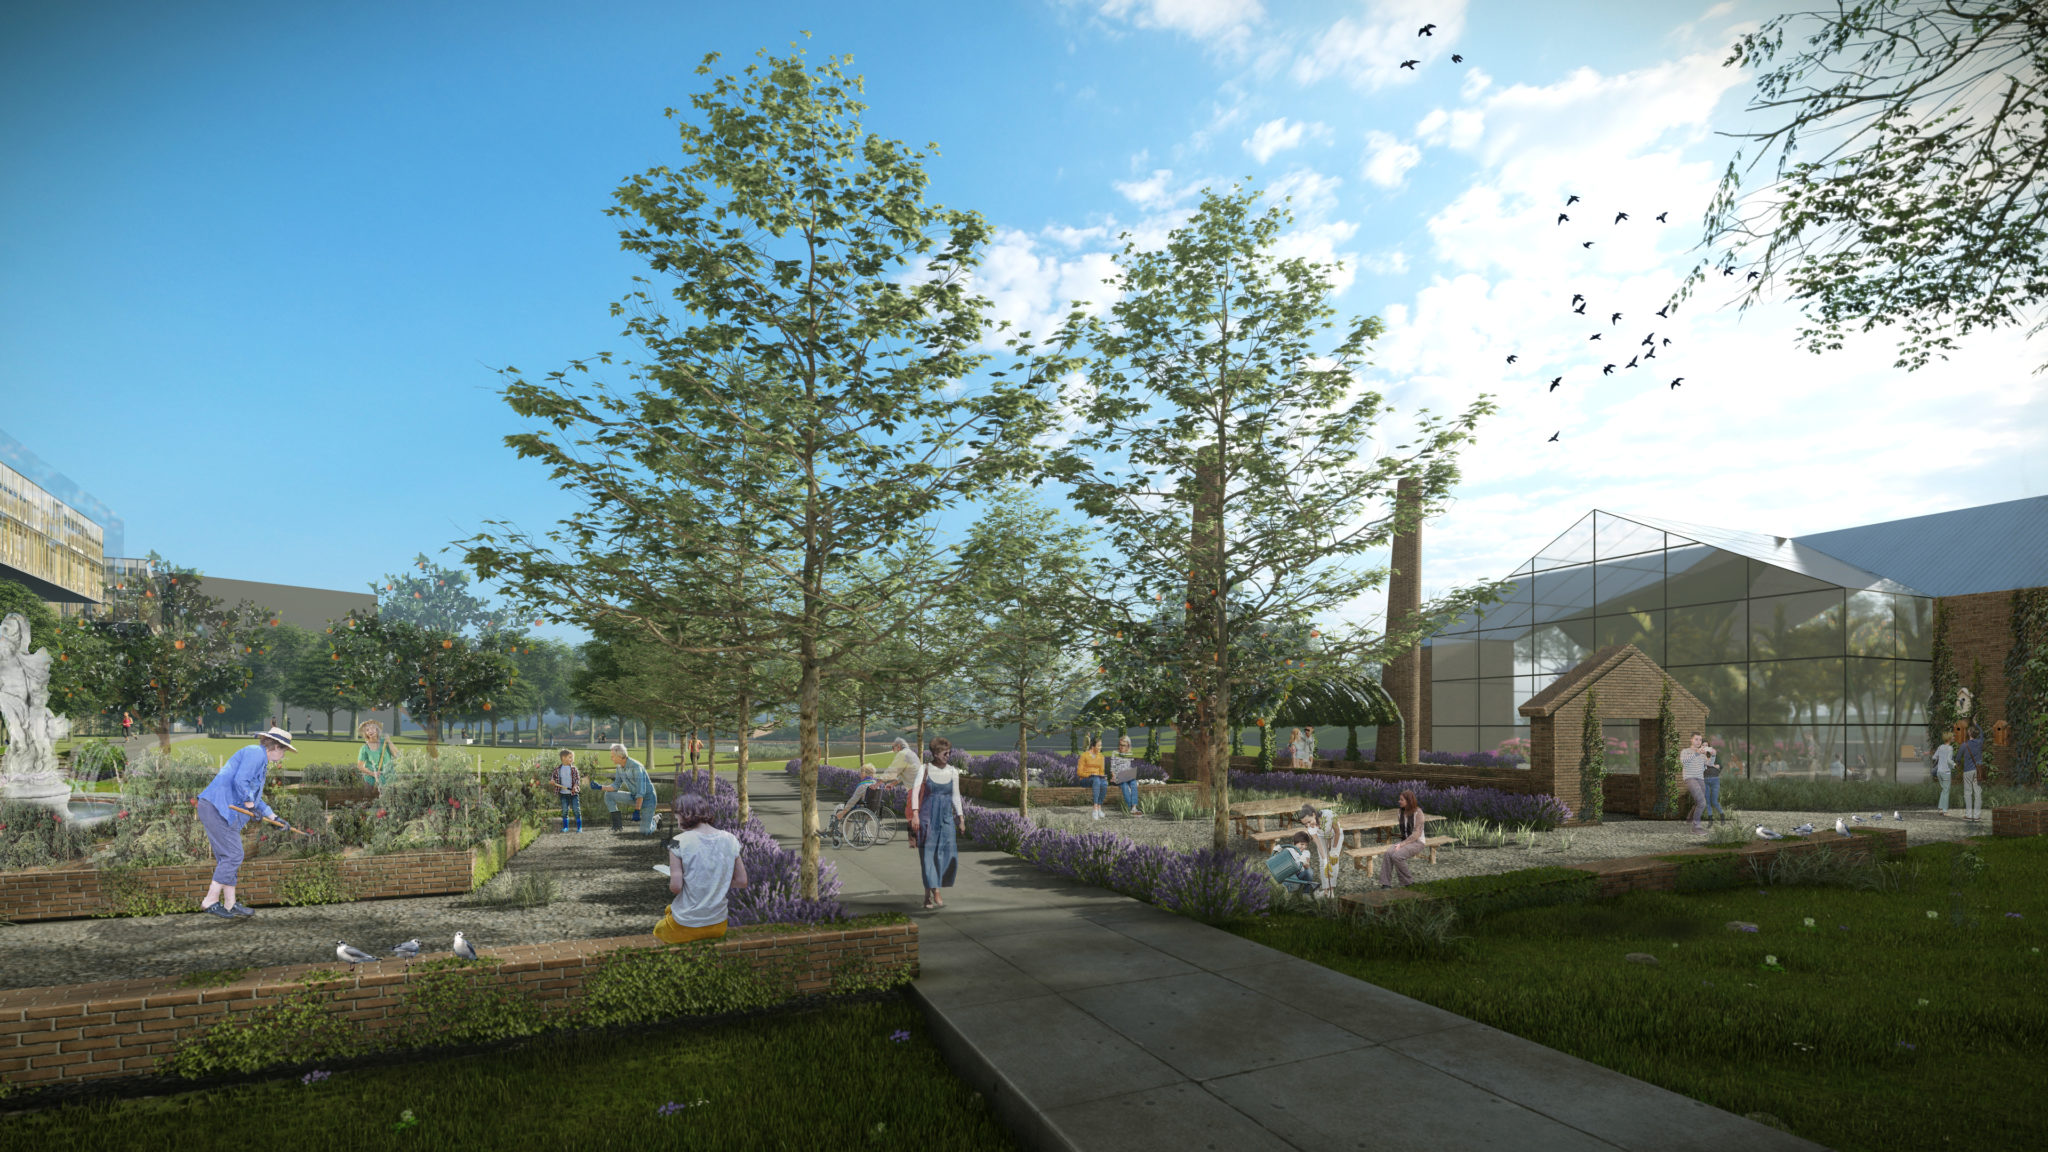 Community garden and cafe provides benefits of connection. Designs incorporated recycled materials to acknowledge the historic houses that once occupied the site.